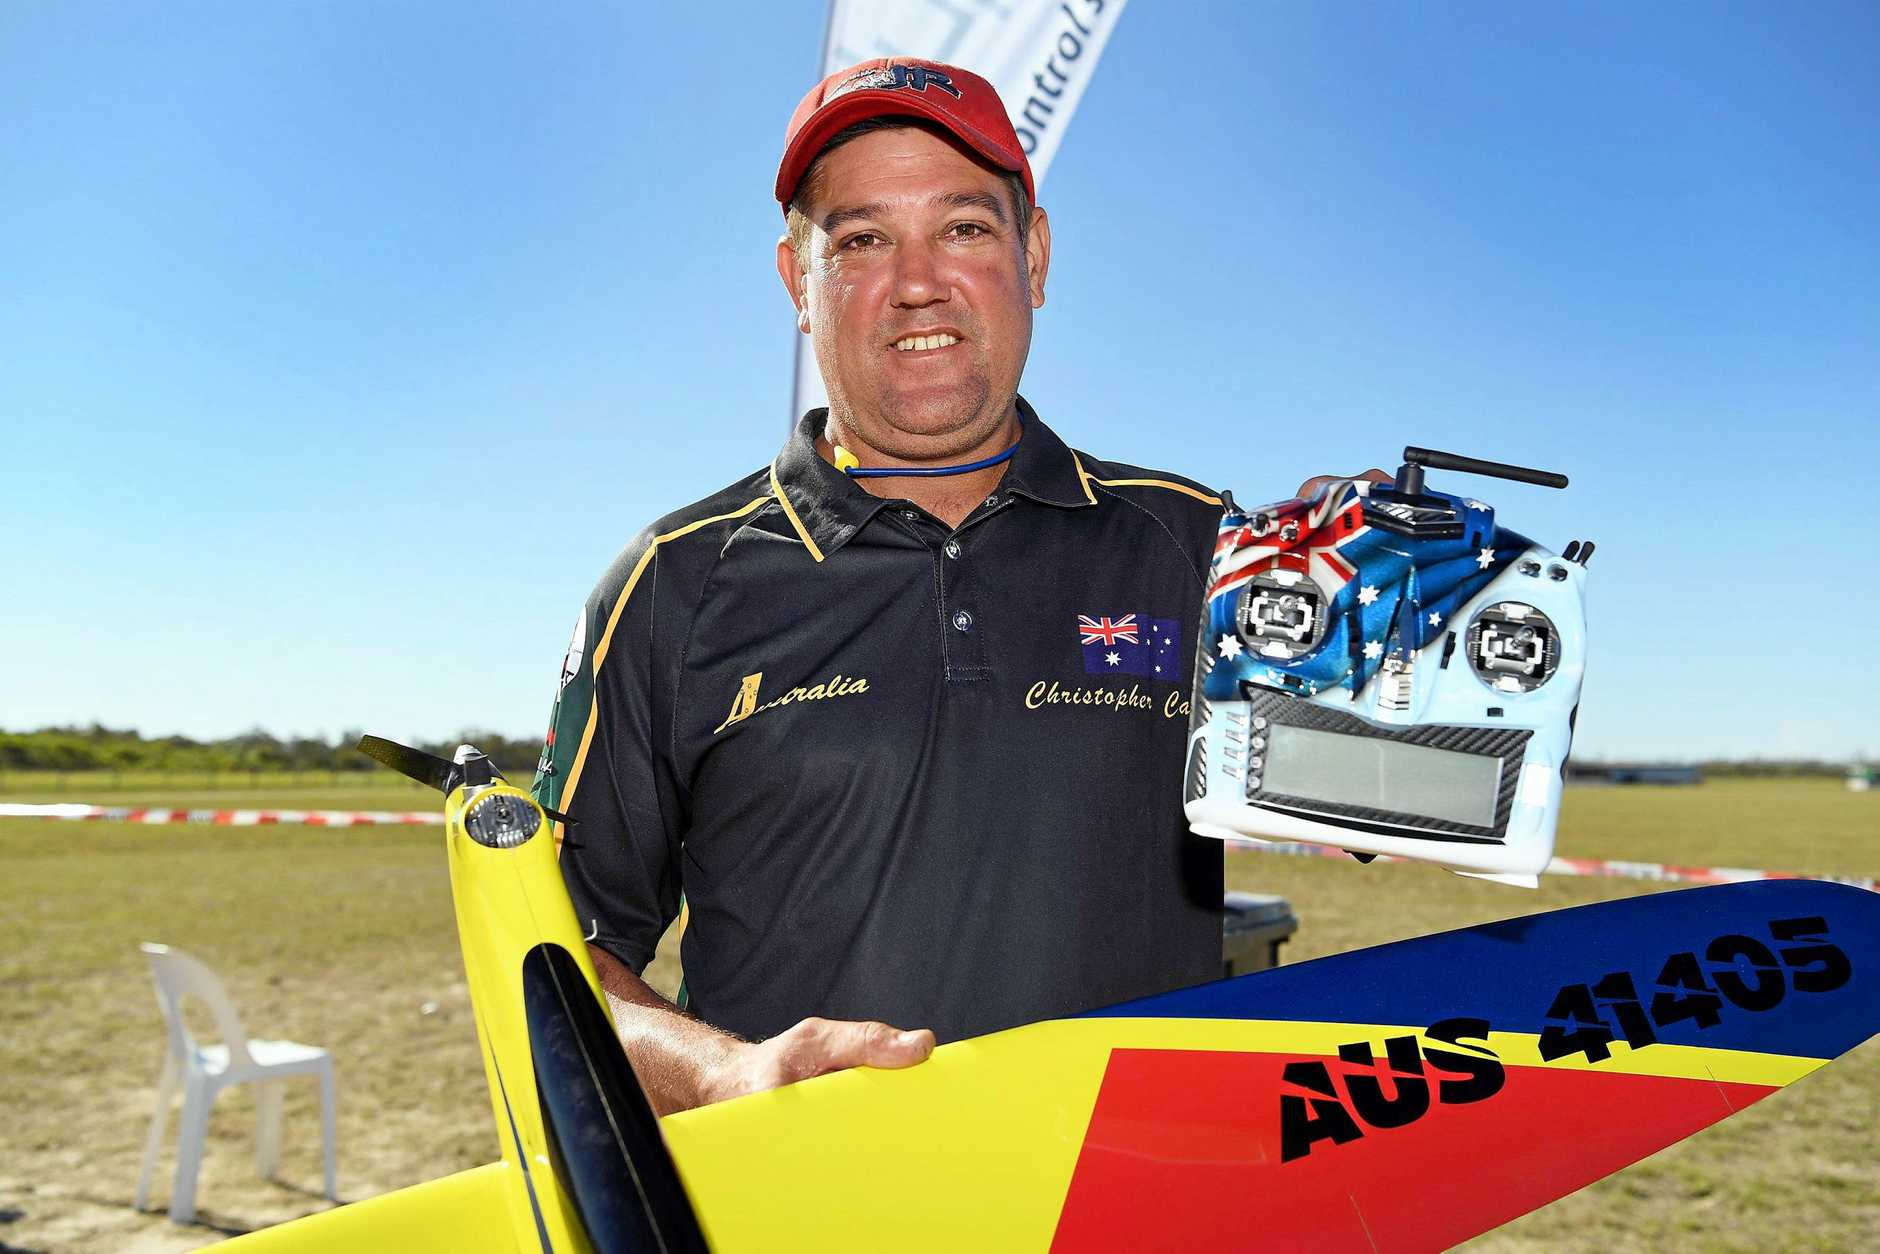 WORLD CHAMPION: Sunshine Coast's Chris Callow won the world championships for the sixth time at the Pylon Racing Model Aircraft World Championships in Maryborough.